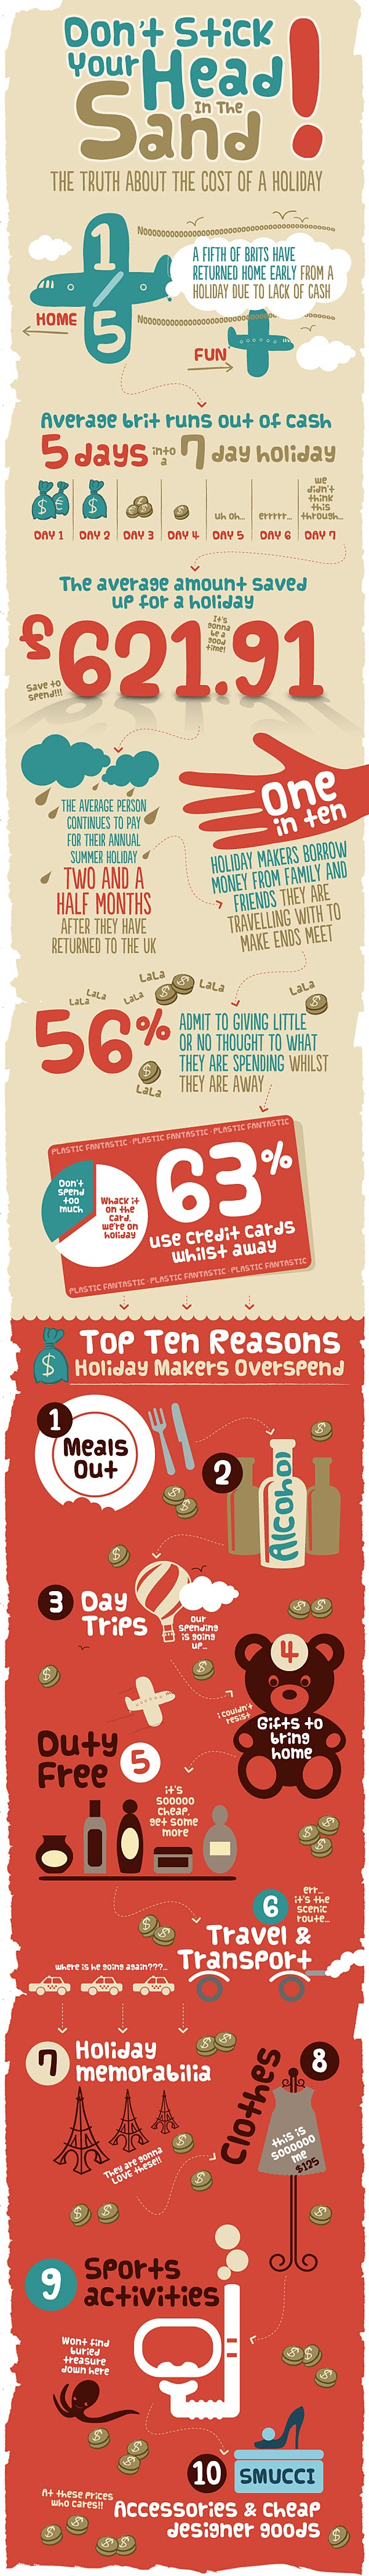 cost-of-a-holiday-infographic